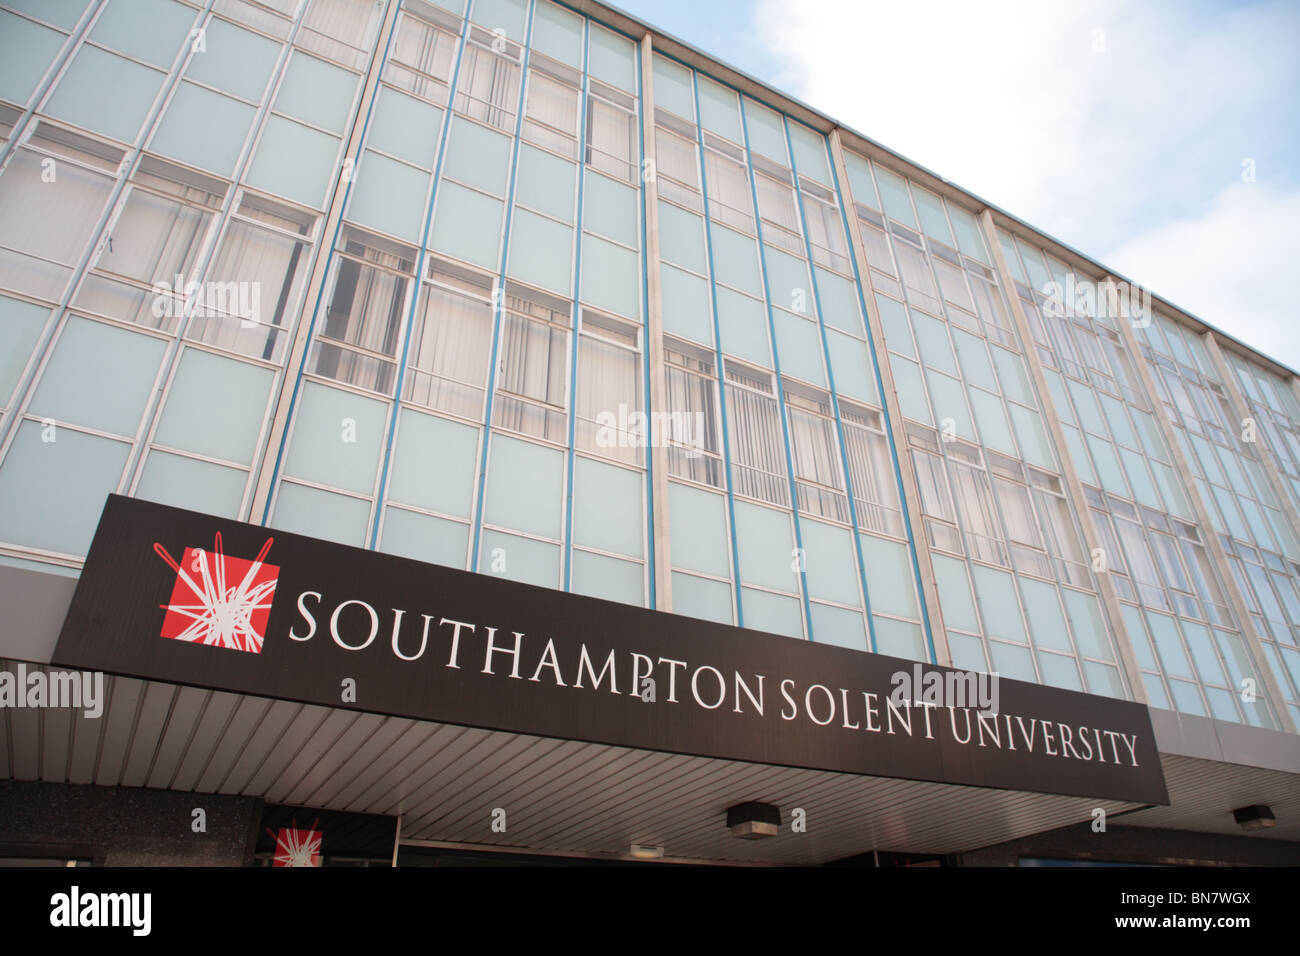 Southampton Solent University - Sir James Matthews Building - Stock Image